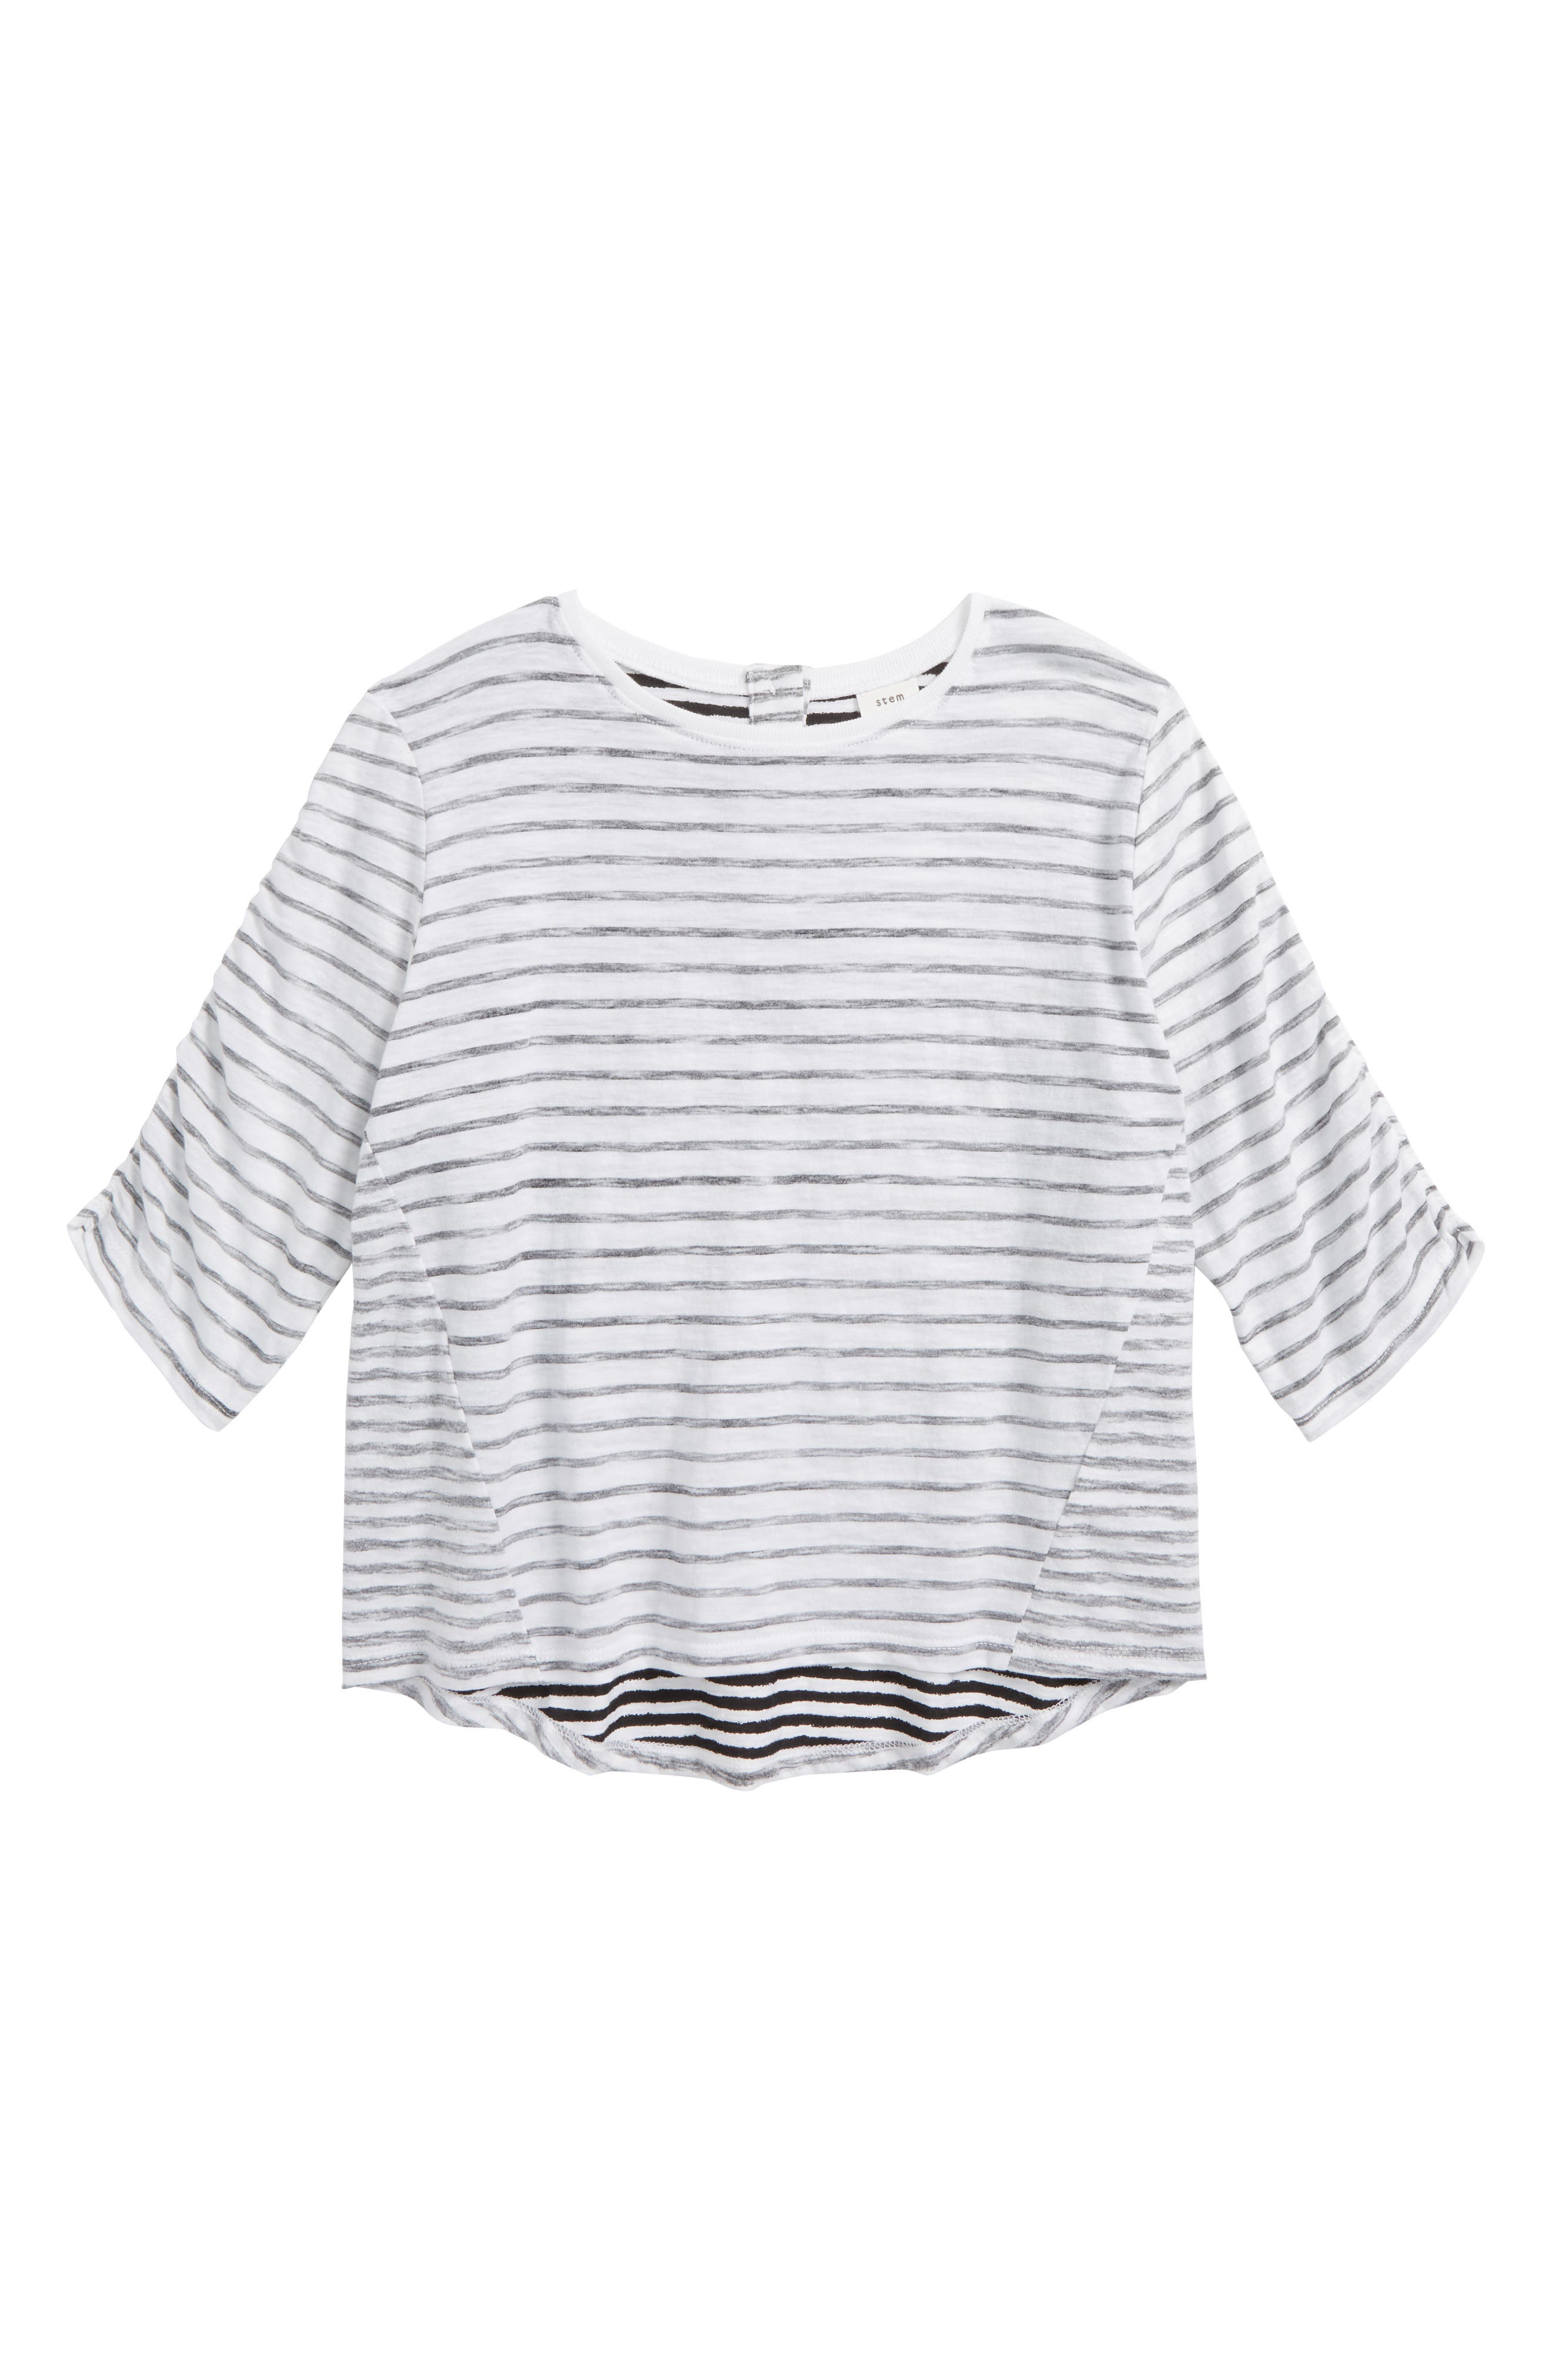 Ruched Sleeve Tee,                         Main,                         color, White- Black Stripe